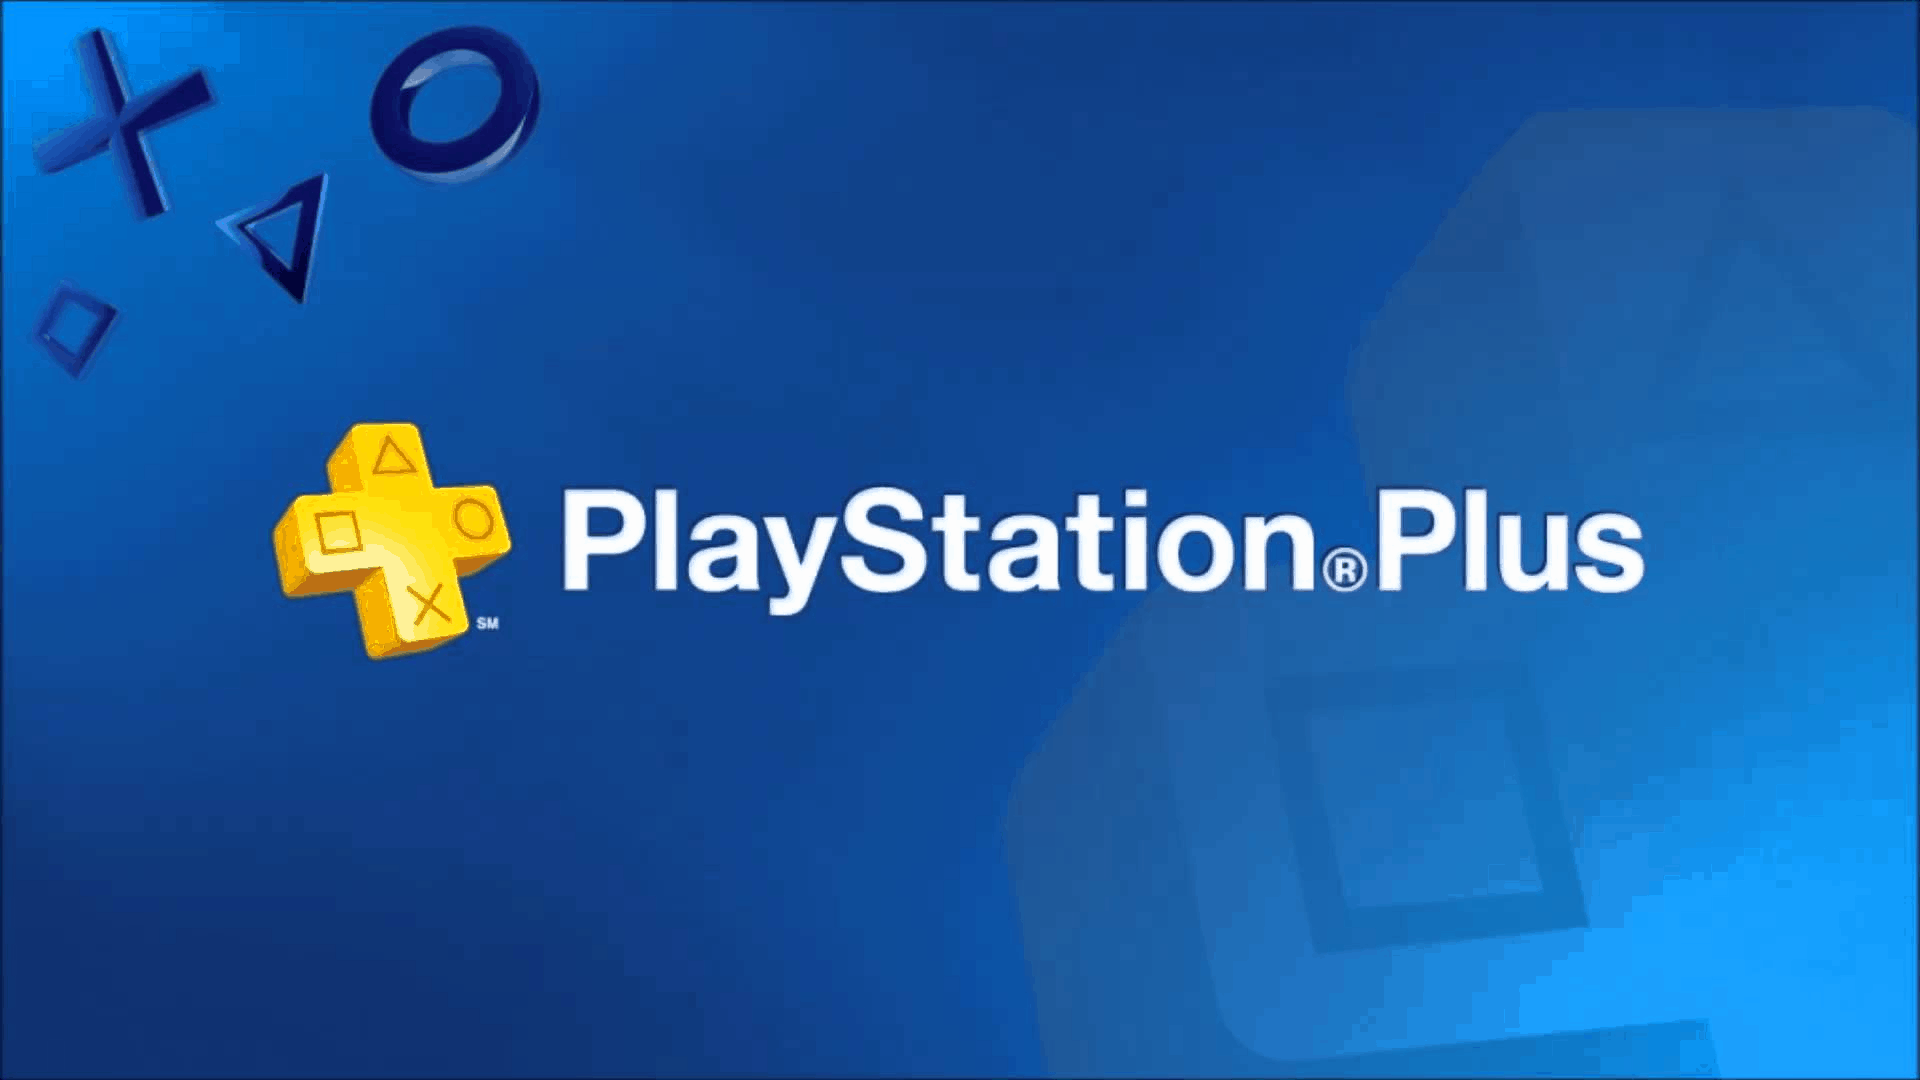 Get ready for PlayStation Plus to include movies